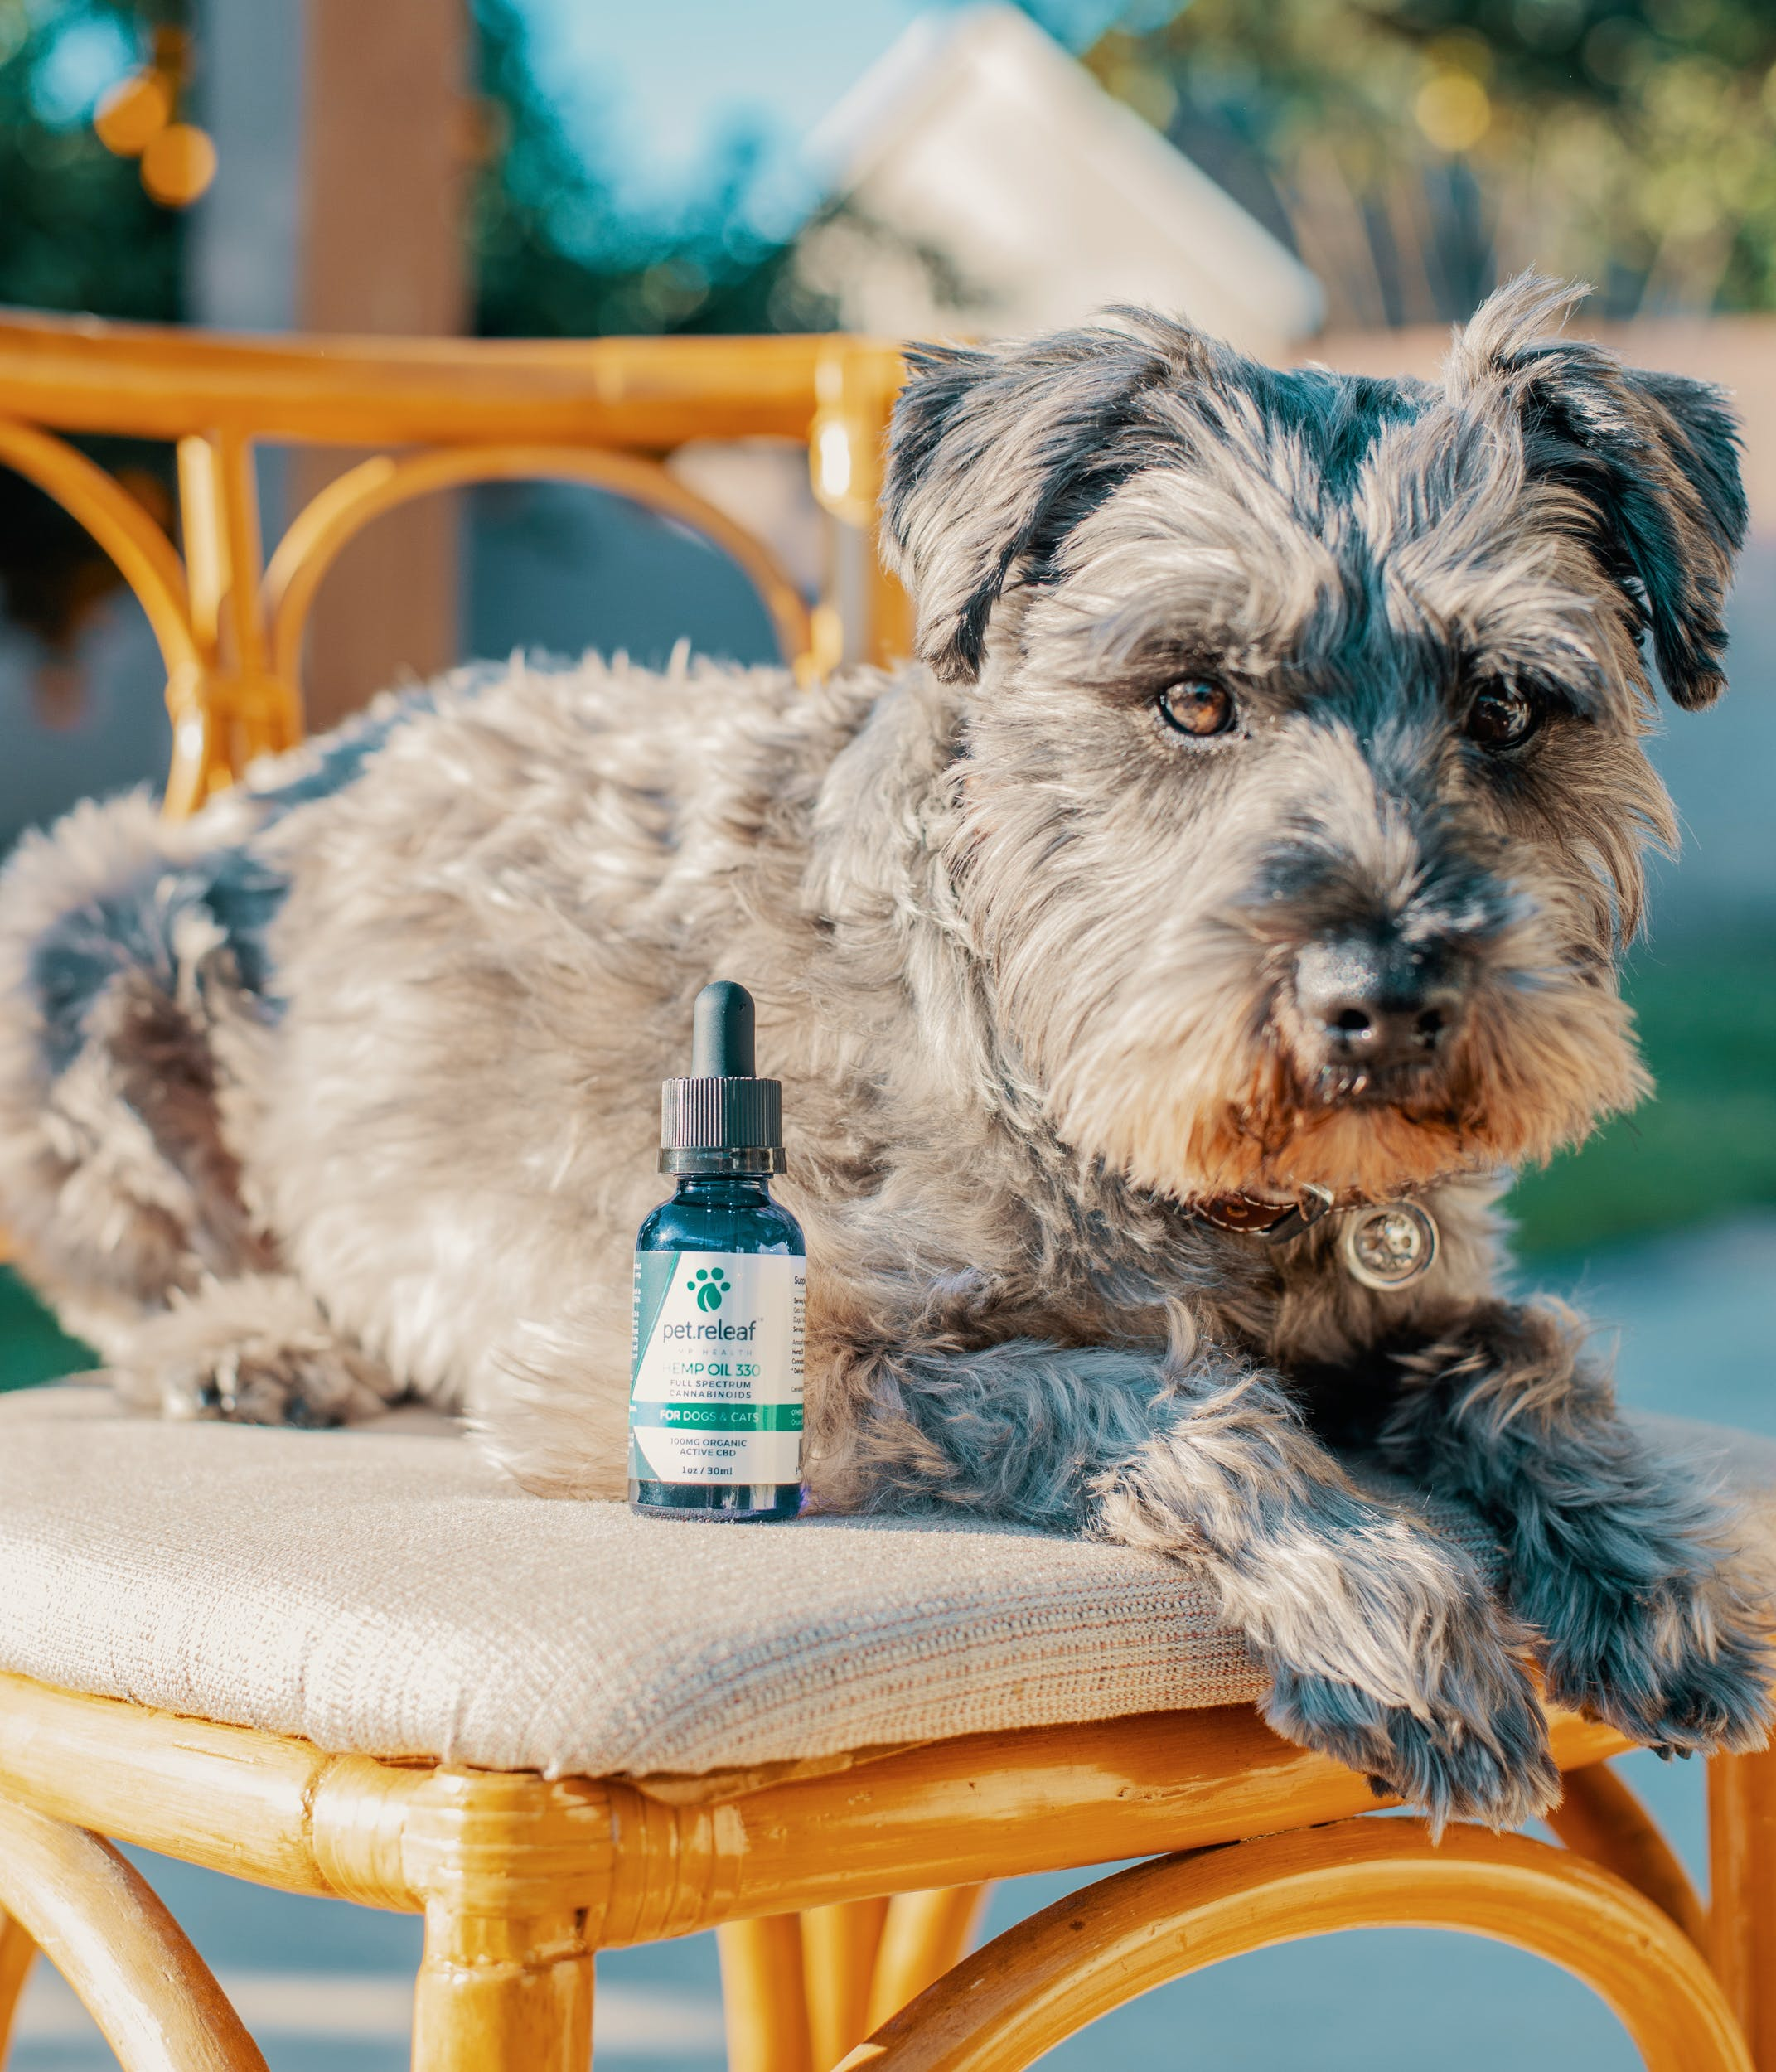 Best CBD Oil For Dogs 48 This Is The Best Hemp Oil For Dogs To Help Manage Anxiety, Seizures and More